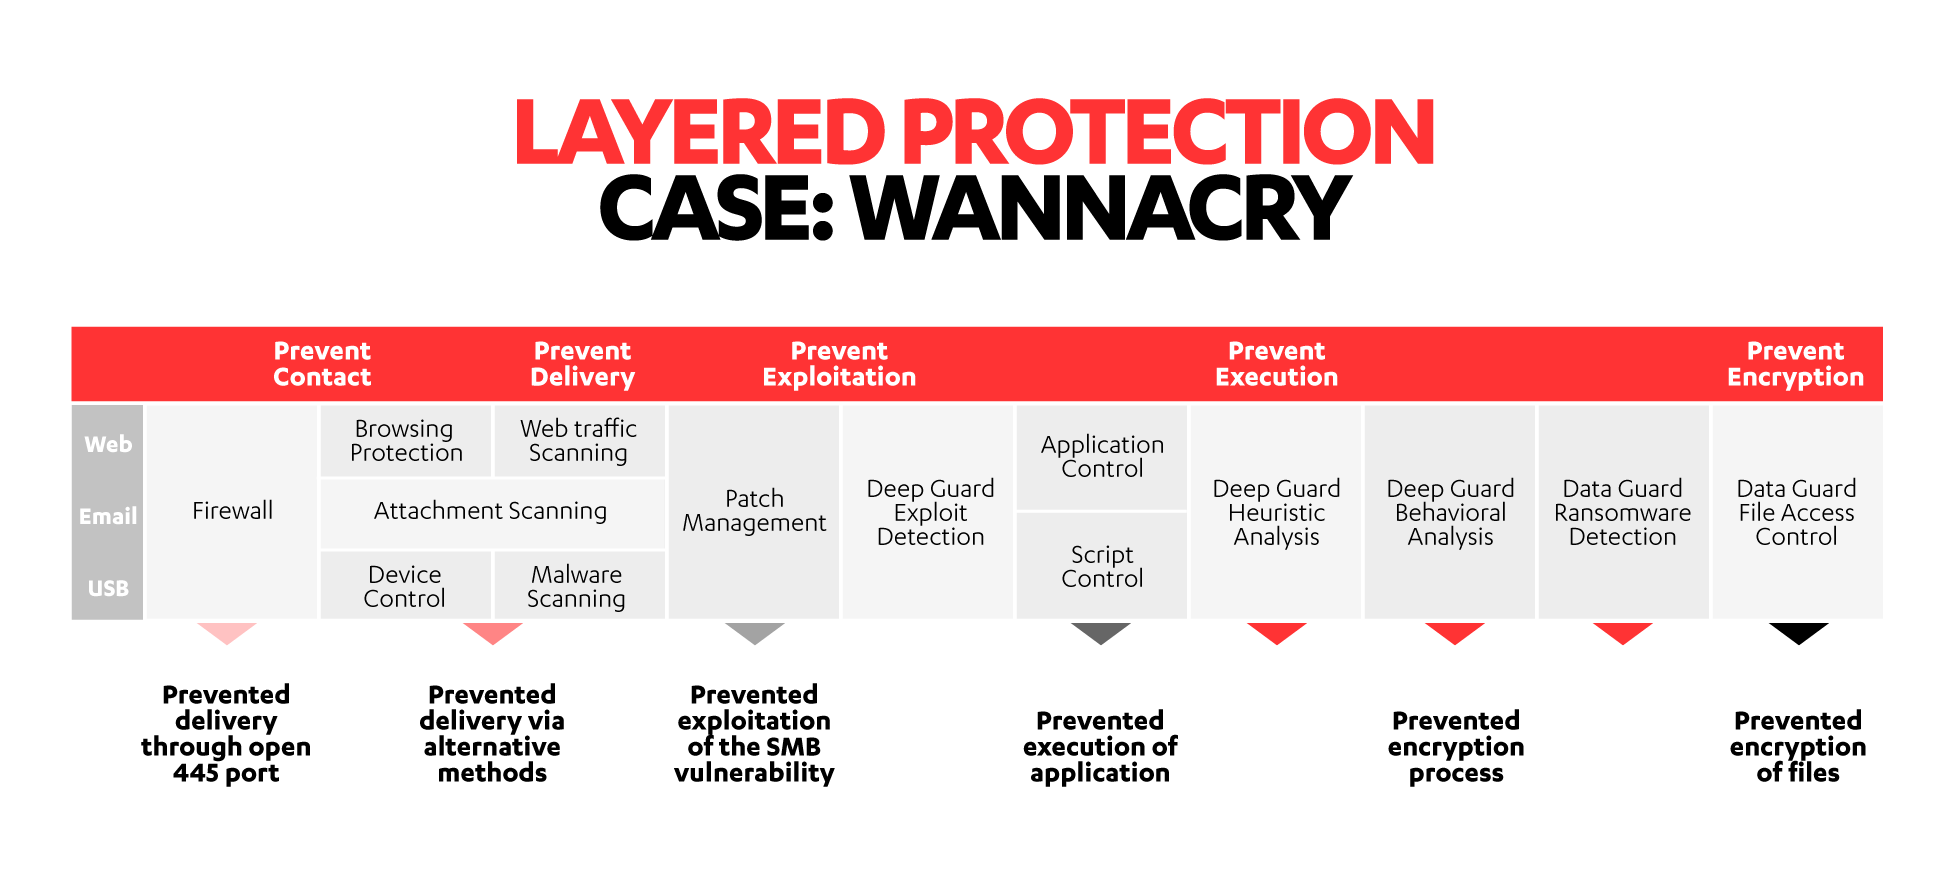 How layered protection stopped Wannacry infection